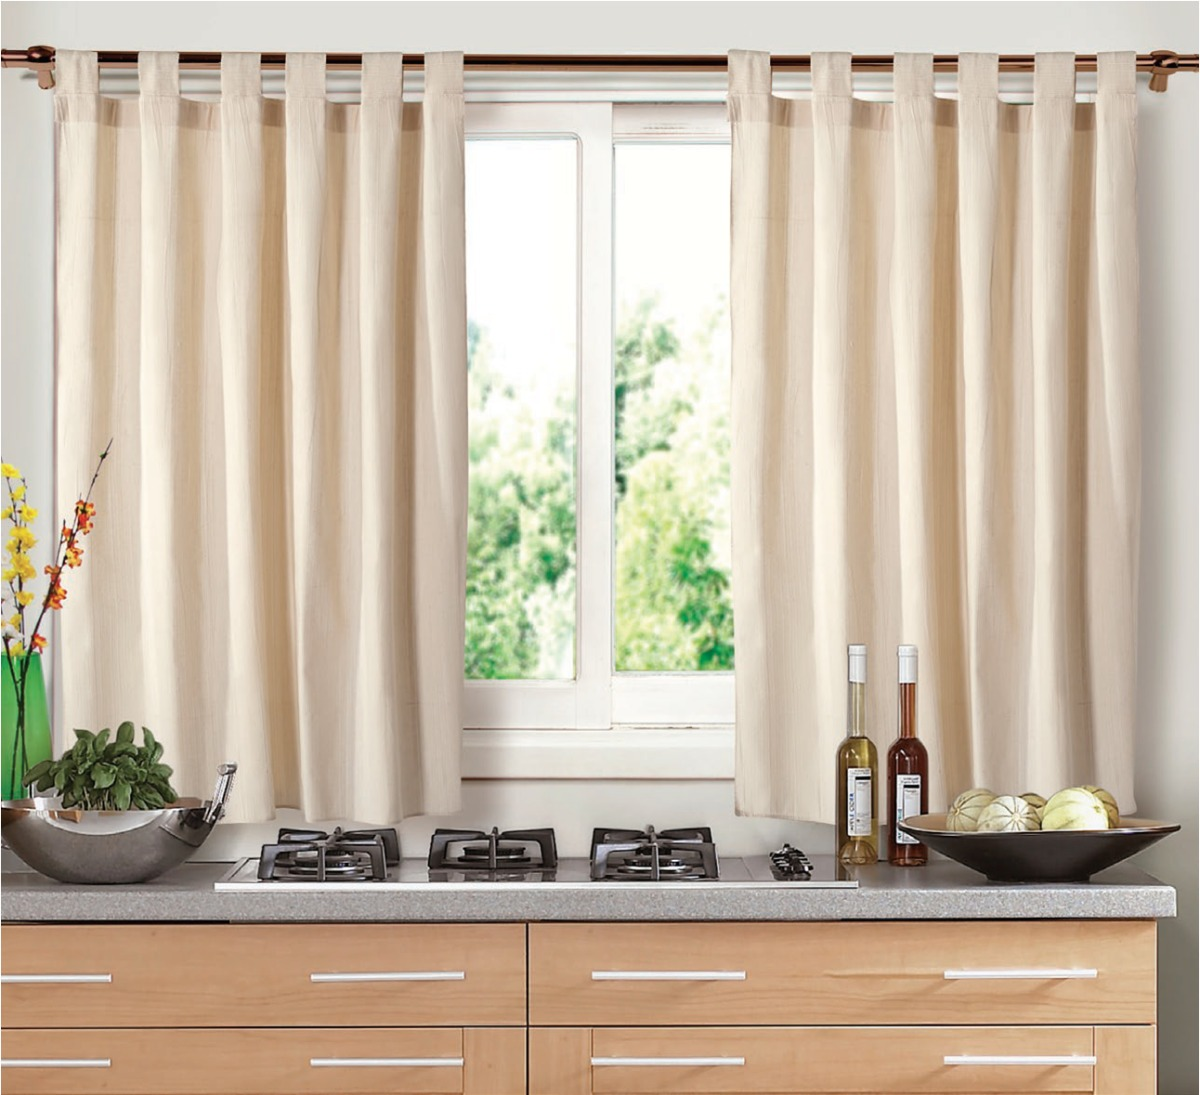 Tela cortinas cocina simple interesting morden tubo - Cortinas para cocina rustica ...